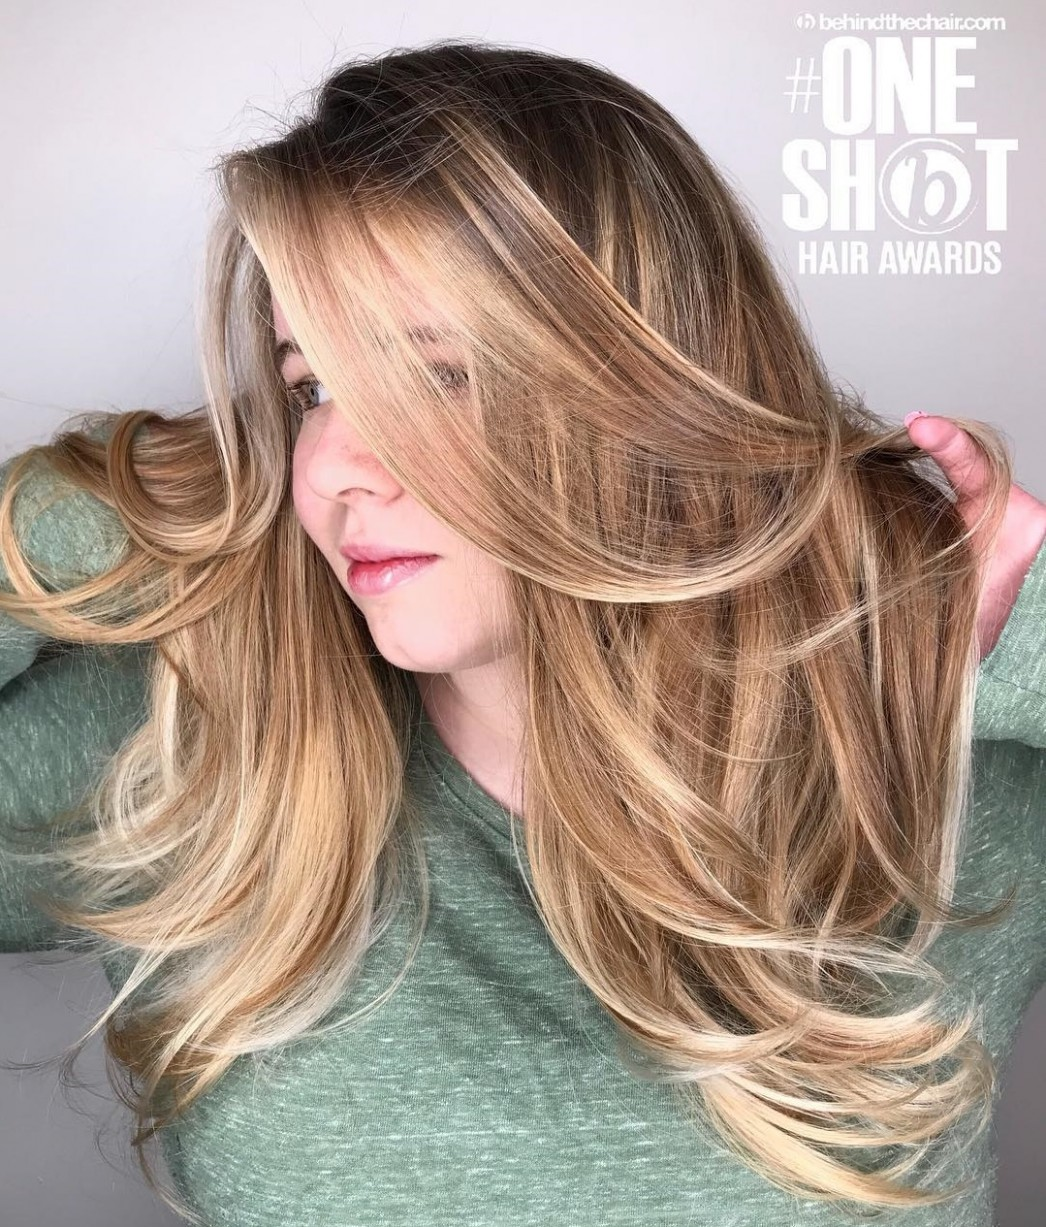 10 Amazing Haircuts For Round Faces Hair Adviser Best Haircut For Round Face Female